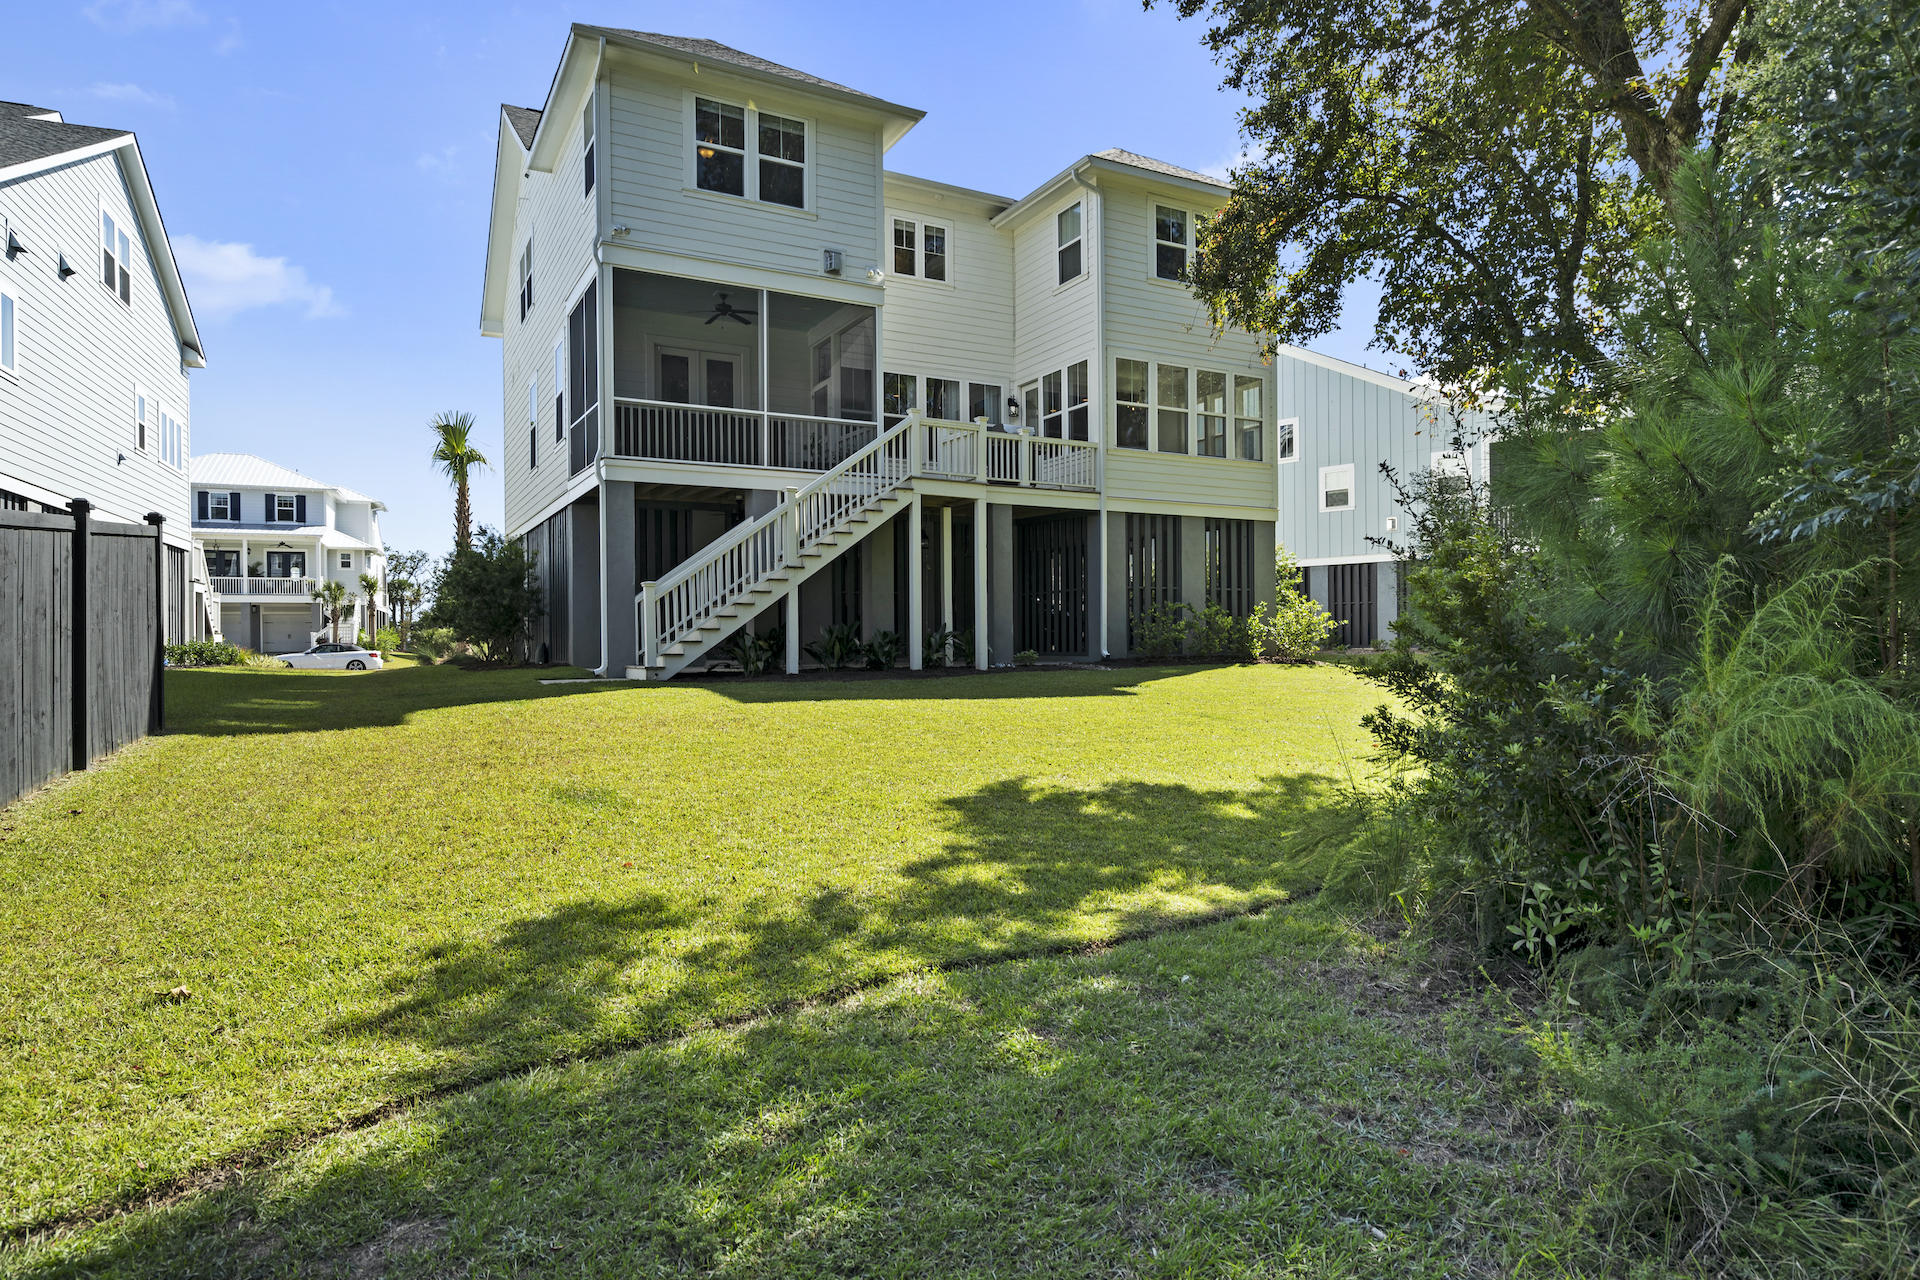 Stratton by the Sound Homes For Sale - 1509 Menhaden, Mount Pleasant, SC - 8